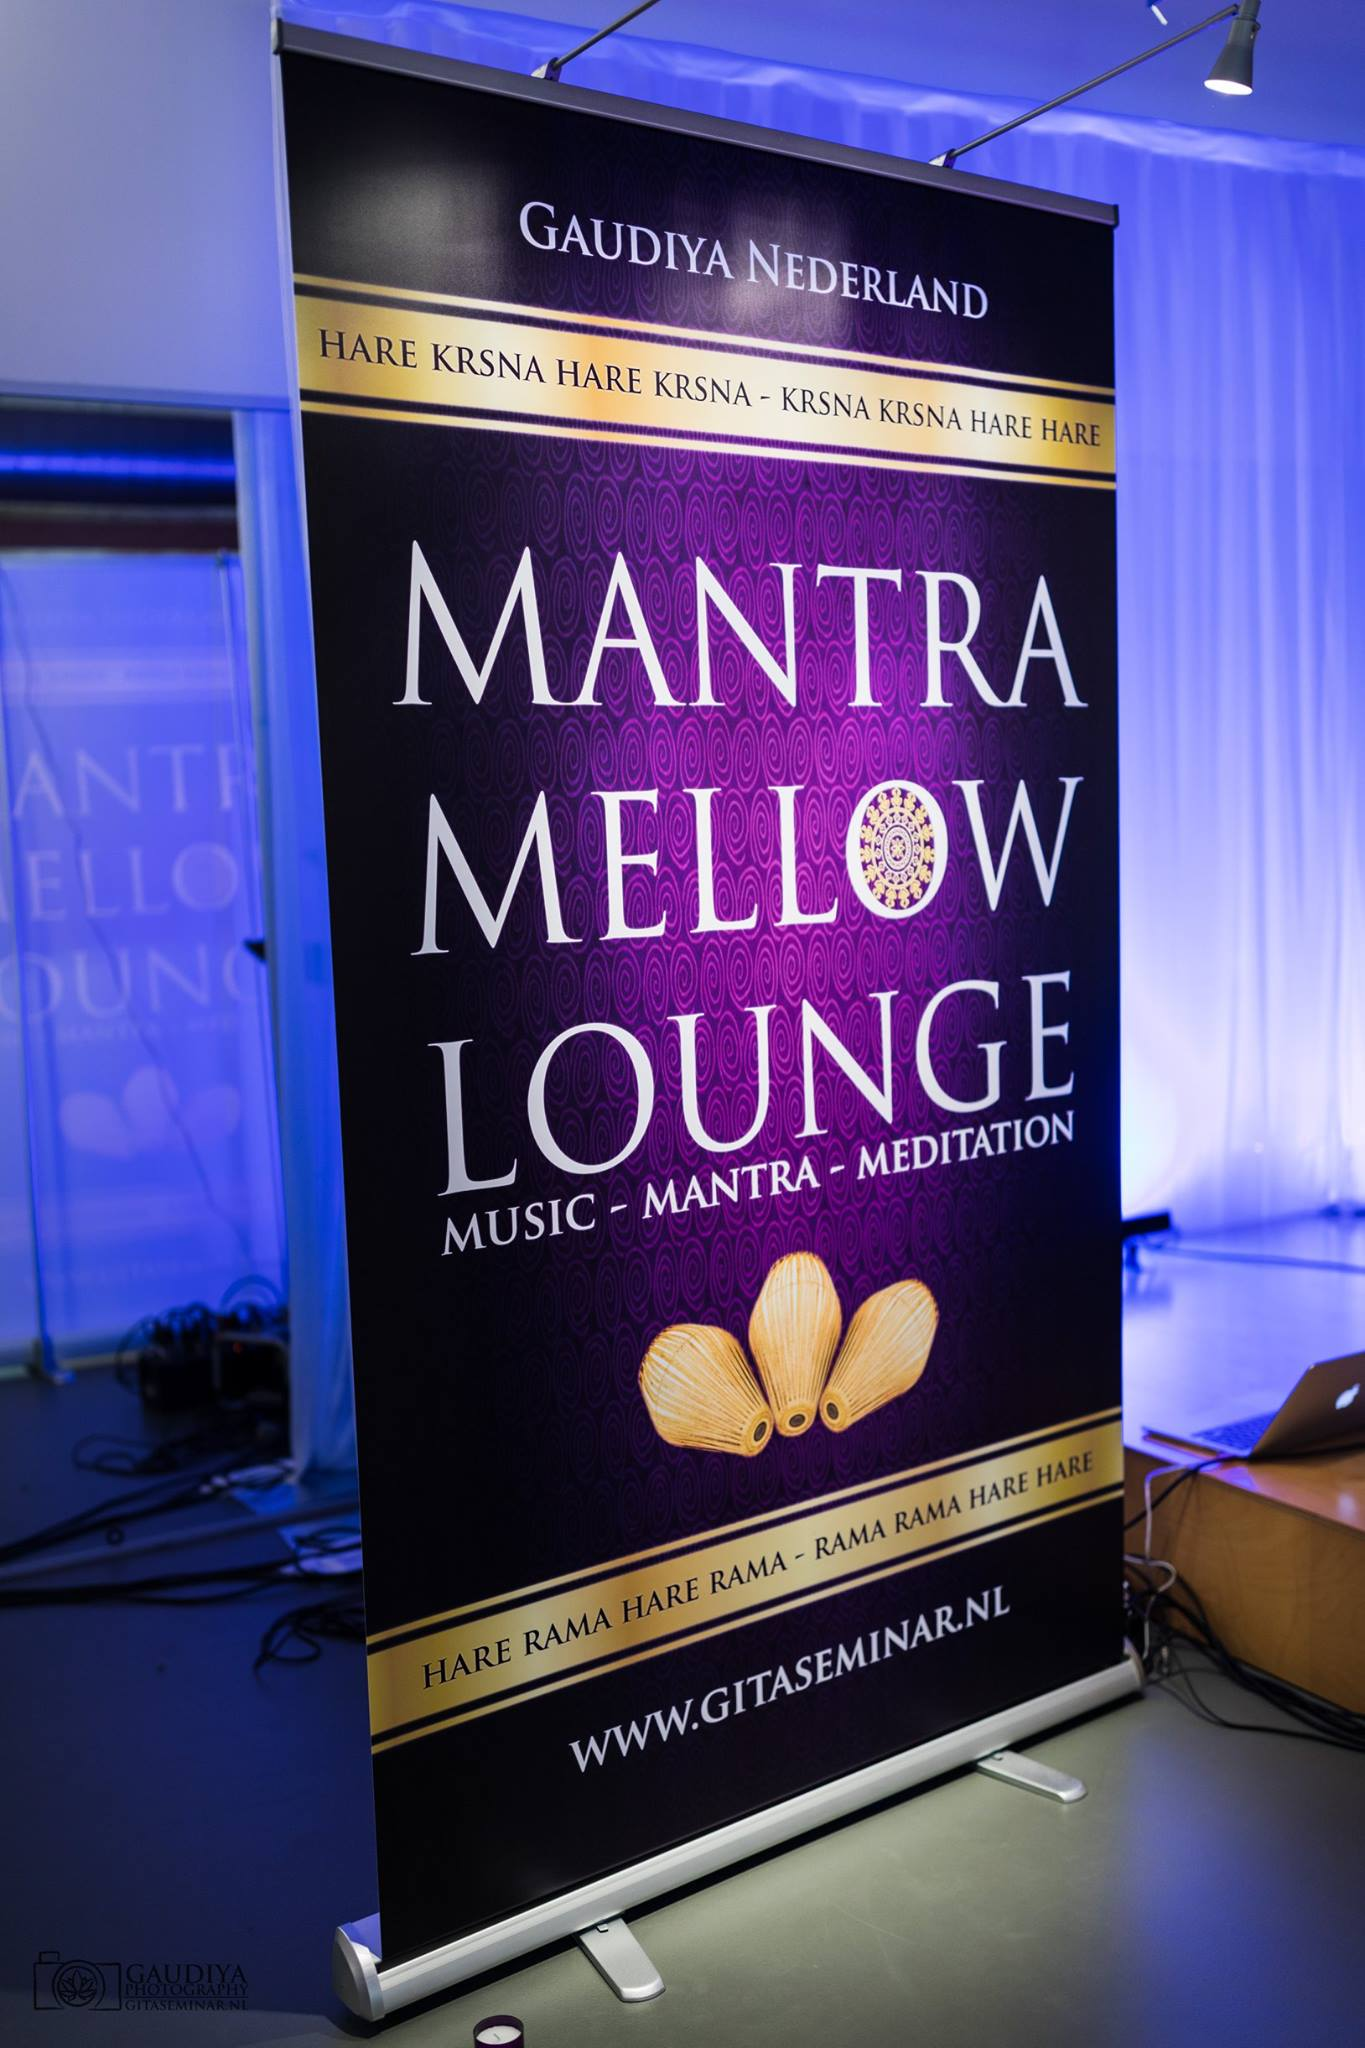 Mantra mellow lounge